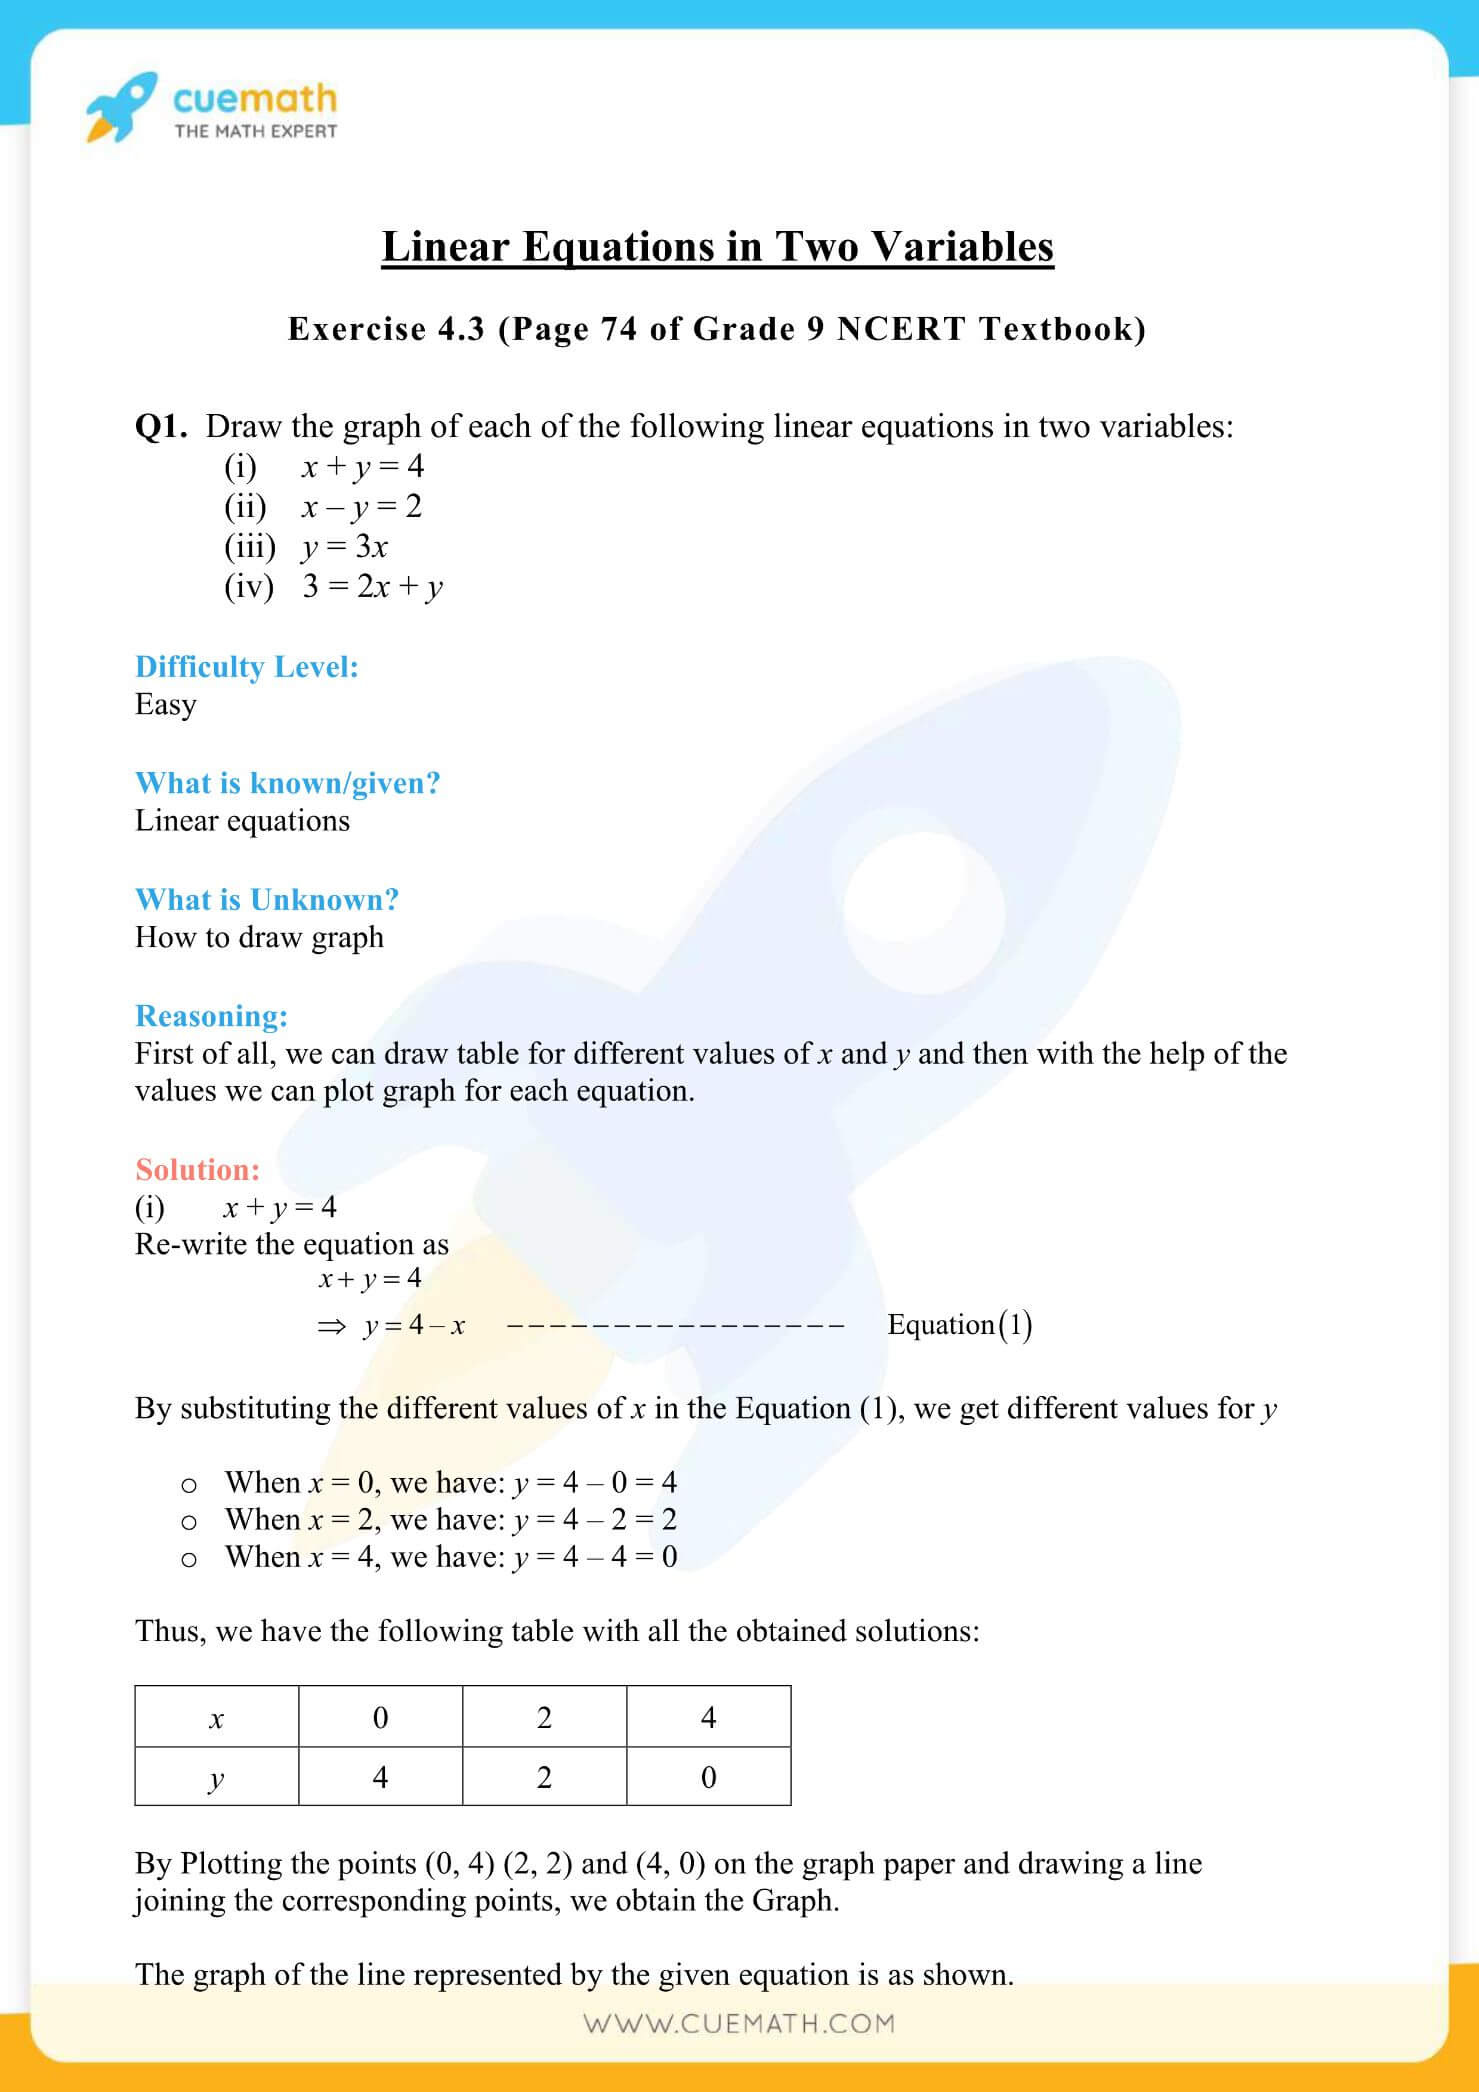 NCERT Solutions Class 9 Math Chapter 4 Linear Equations In Two Variables 9